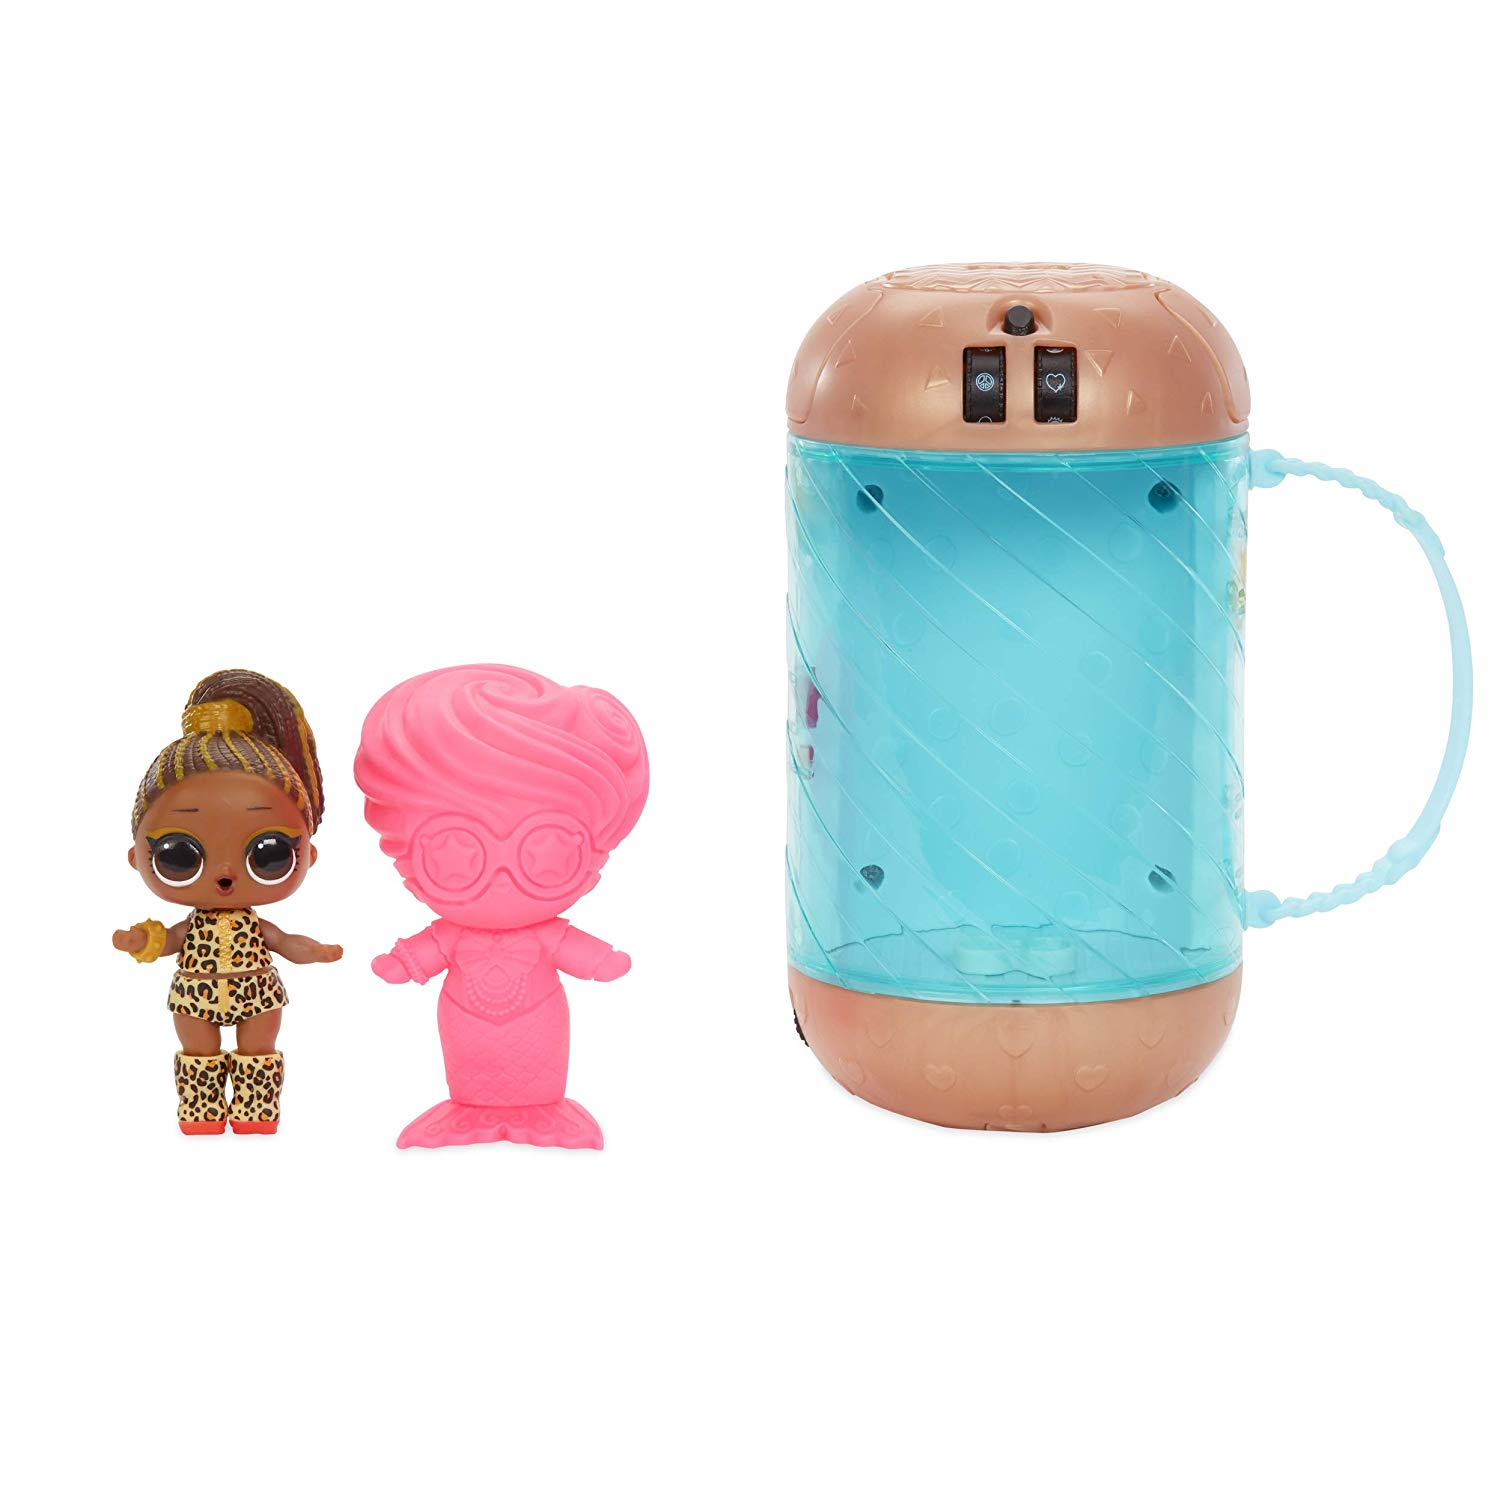 l.o.l. surprise dolls holiday toys with bottle